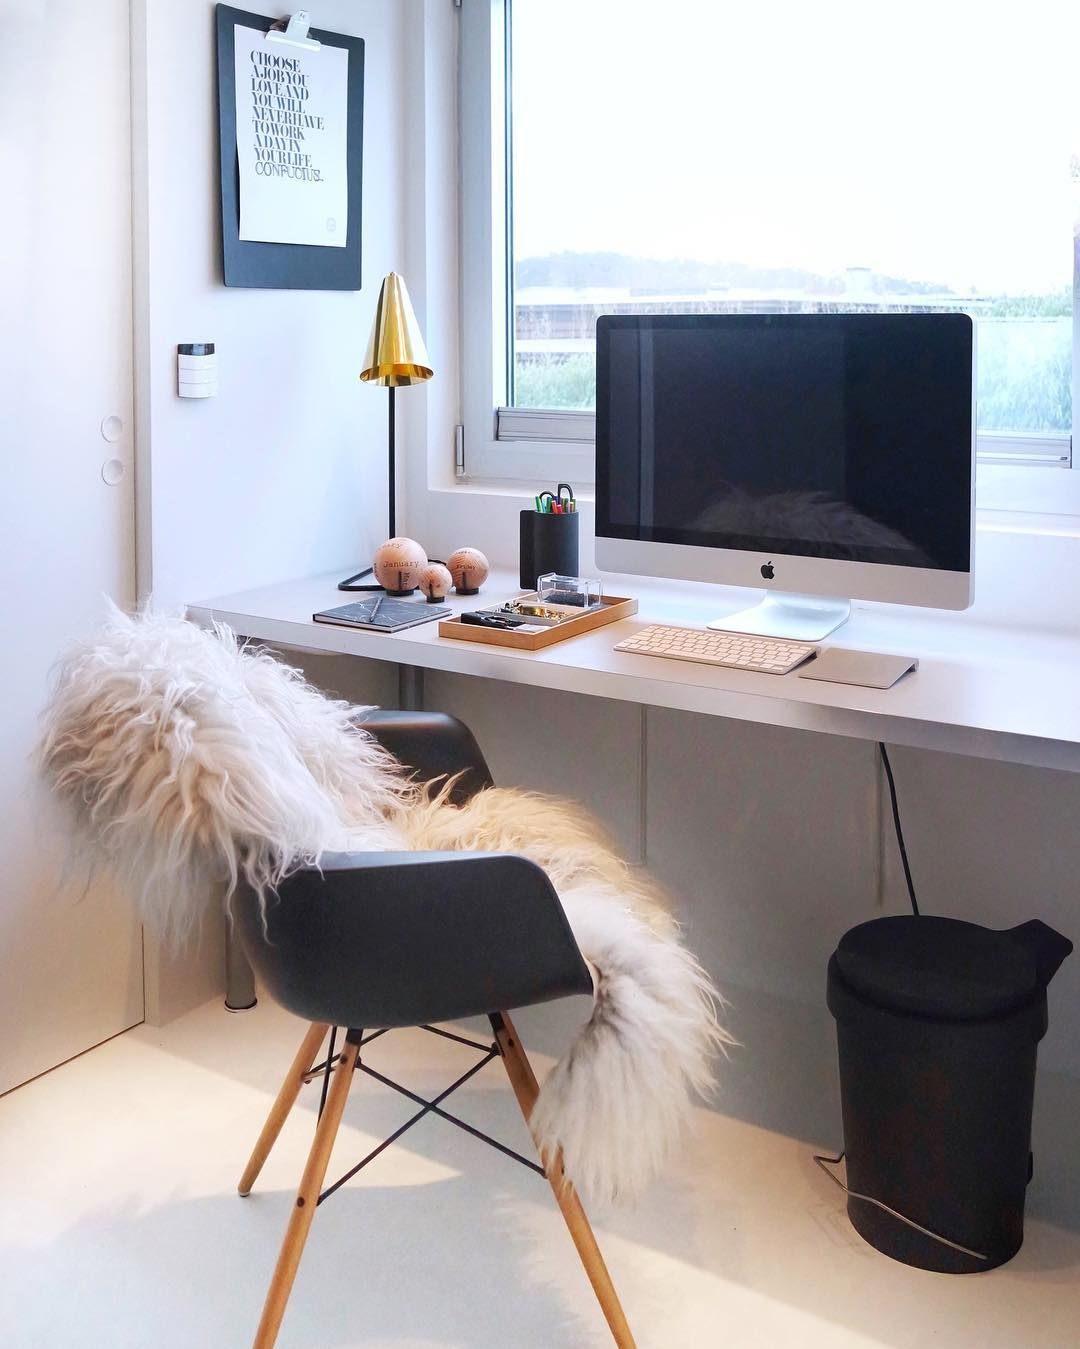 22 Scandinavian Home Office Designs Decorating Ideas: Scandinavian Design Interior Living